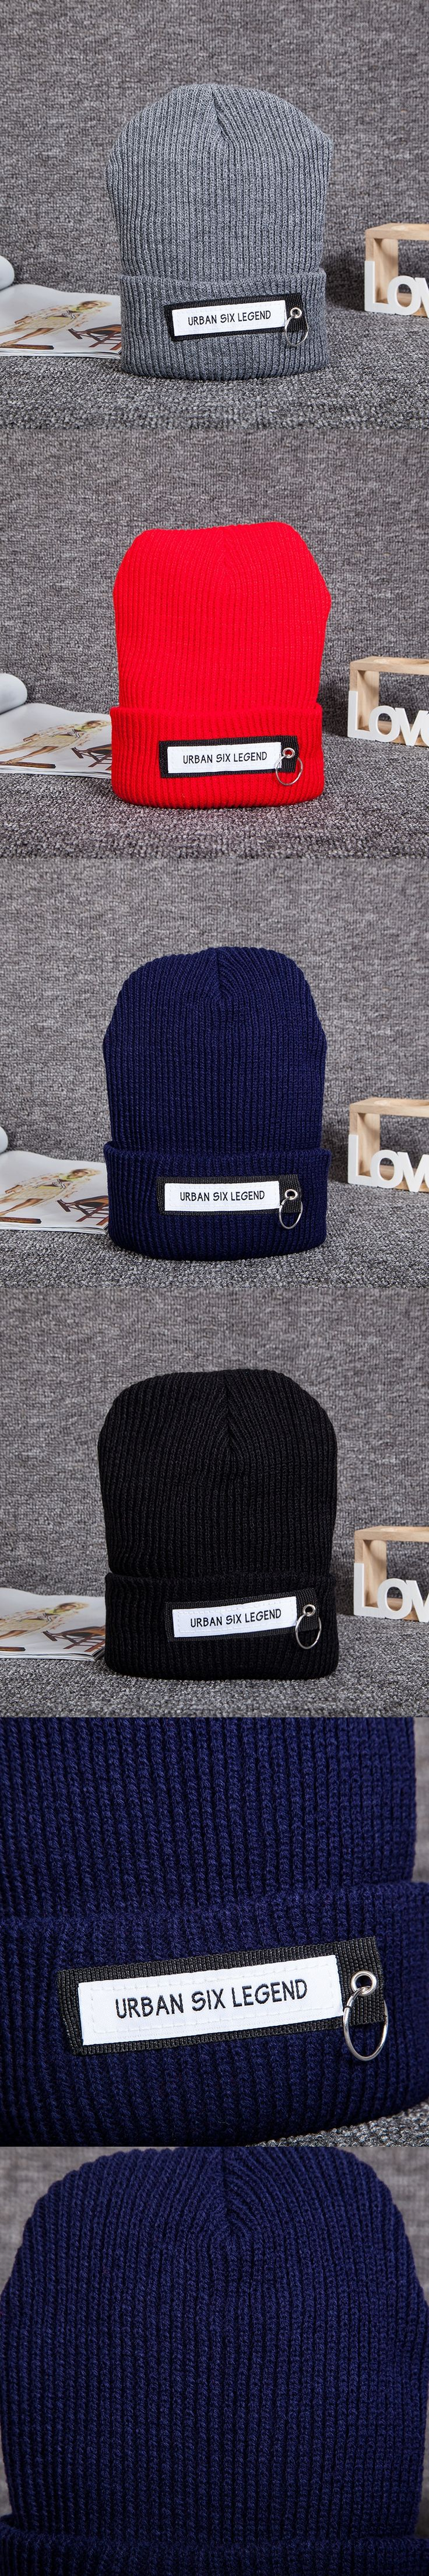 1 Piece URBAN SIX LEGEND Patch Cloth Patchwork Iron Ring Knitted Wool Hat Unisex Beanies Hat Winter Warm Ski Cap 4 Colors 10183